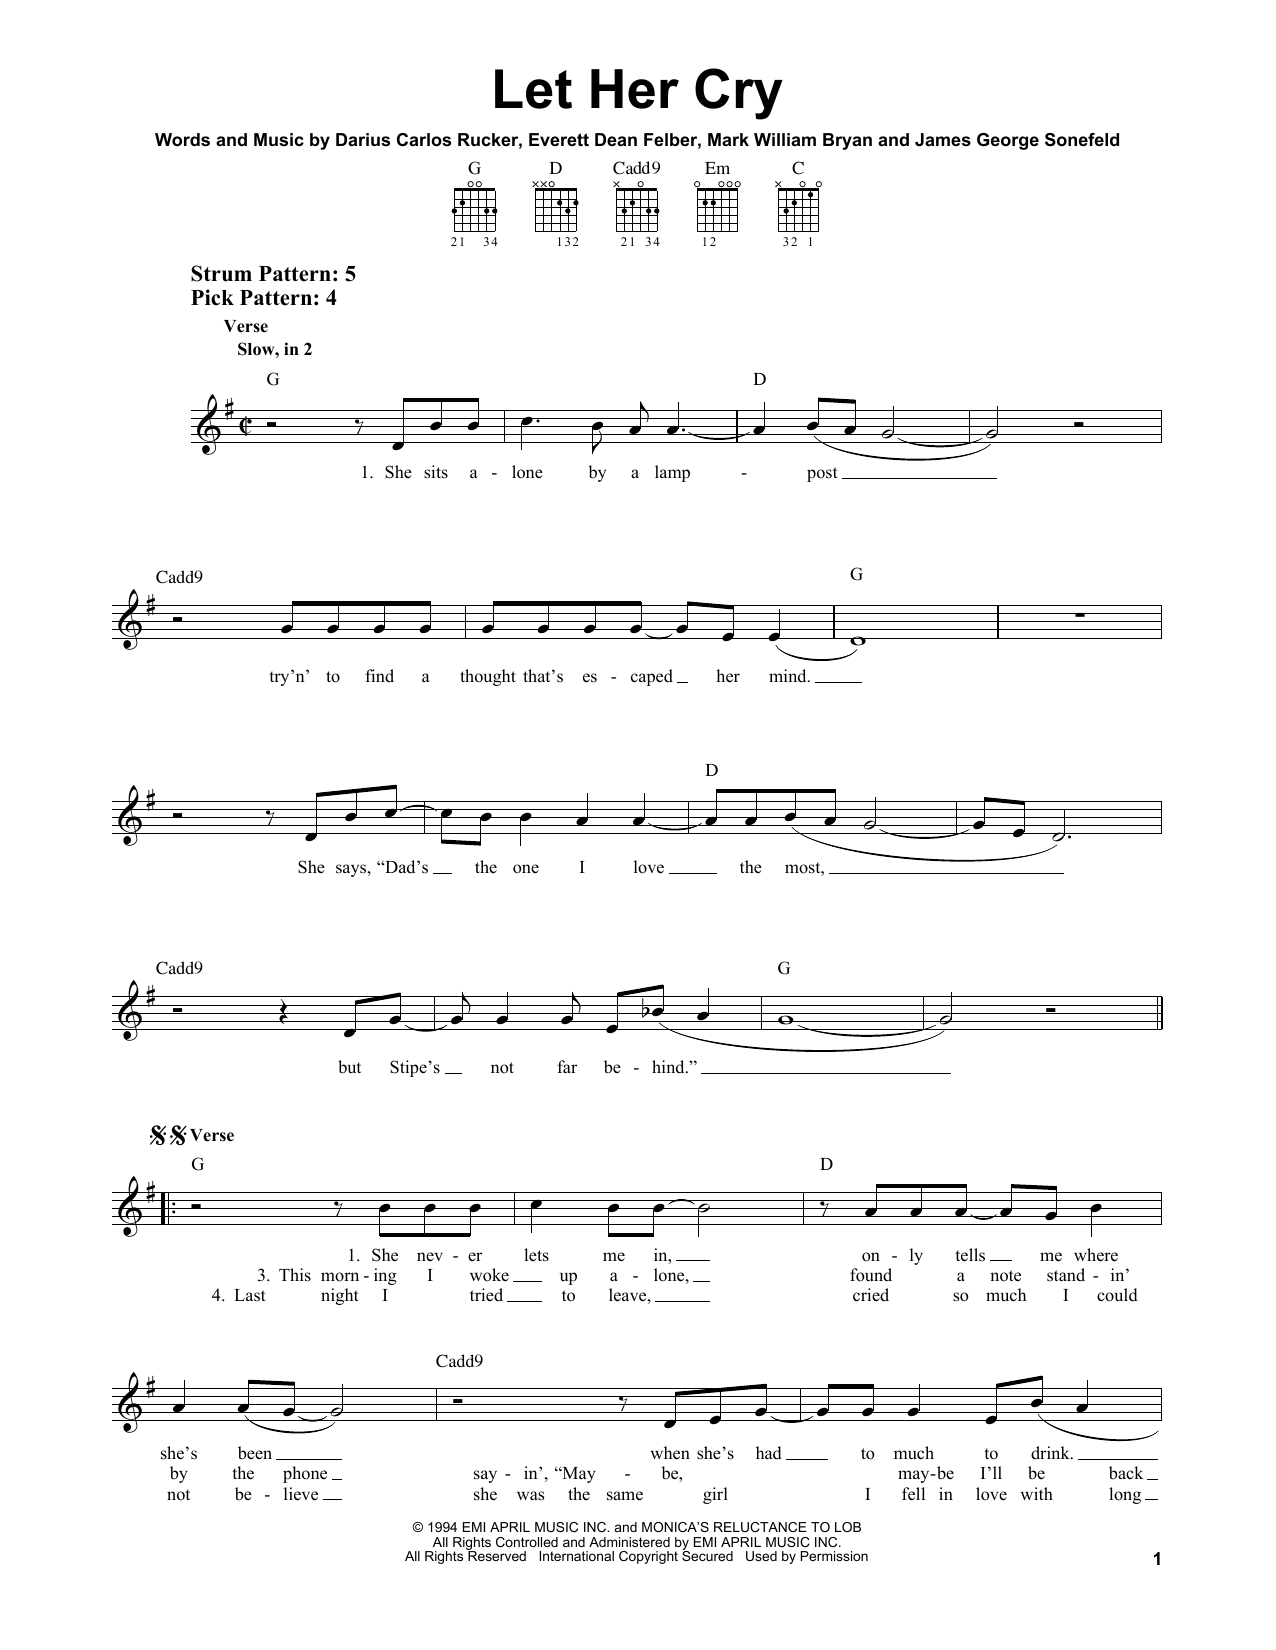 Let Her Cry Sheet Music